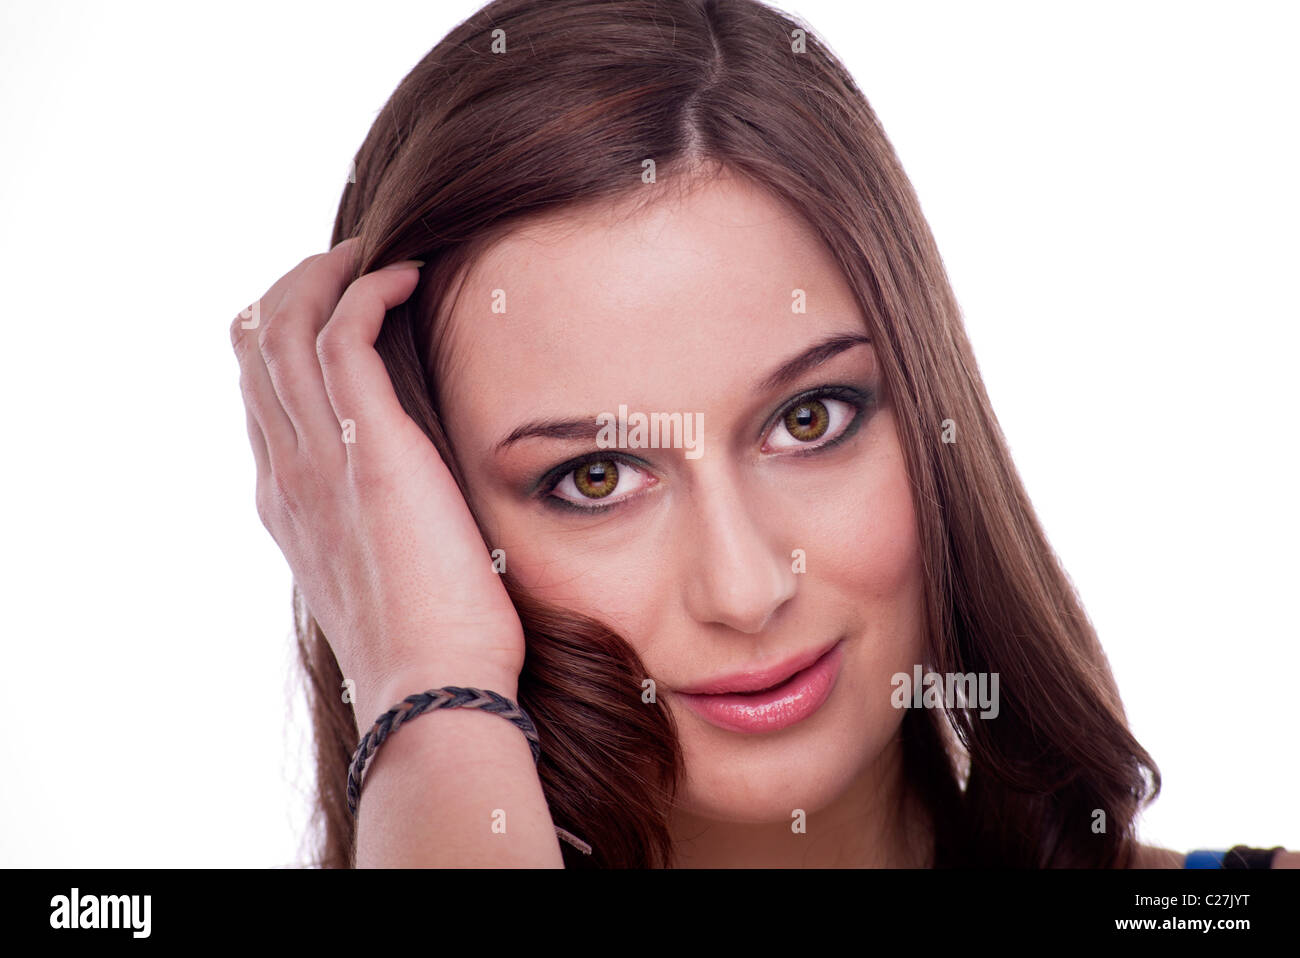 Hair Behind Ear High Resolution Stock Photography And Images Alamy